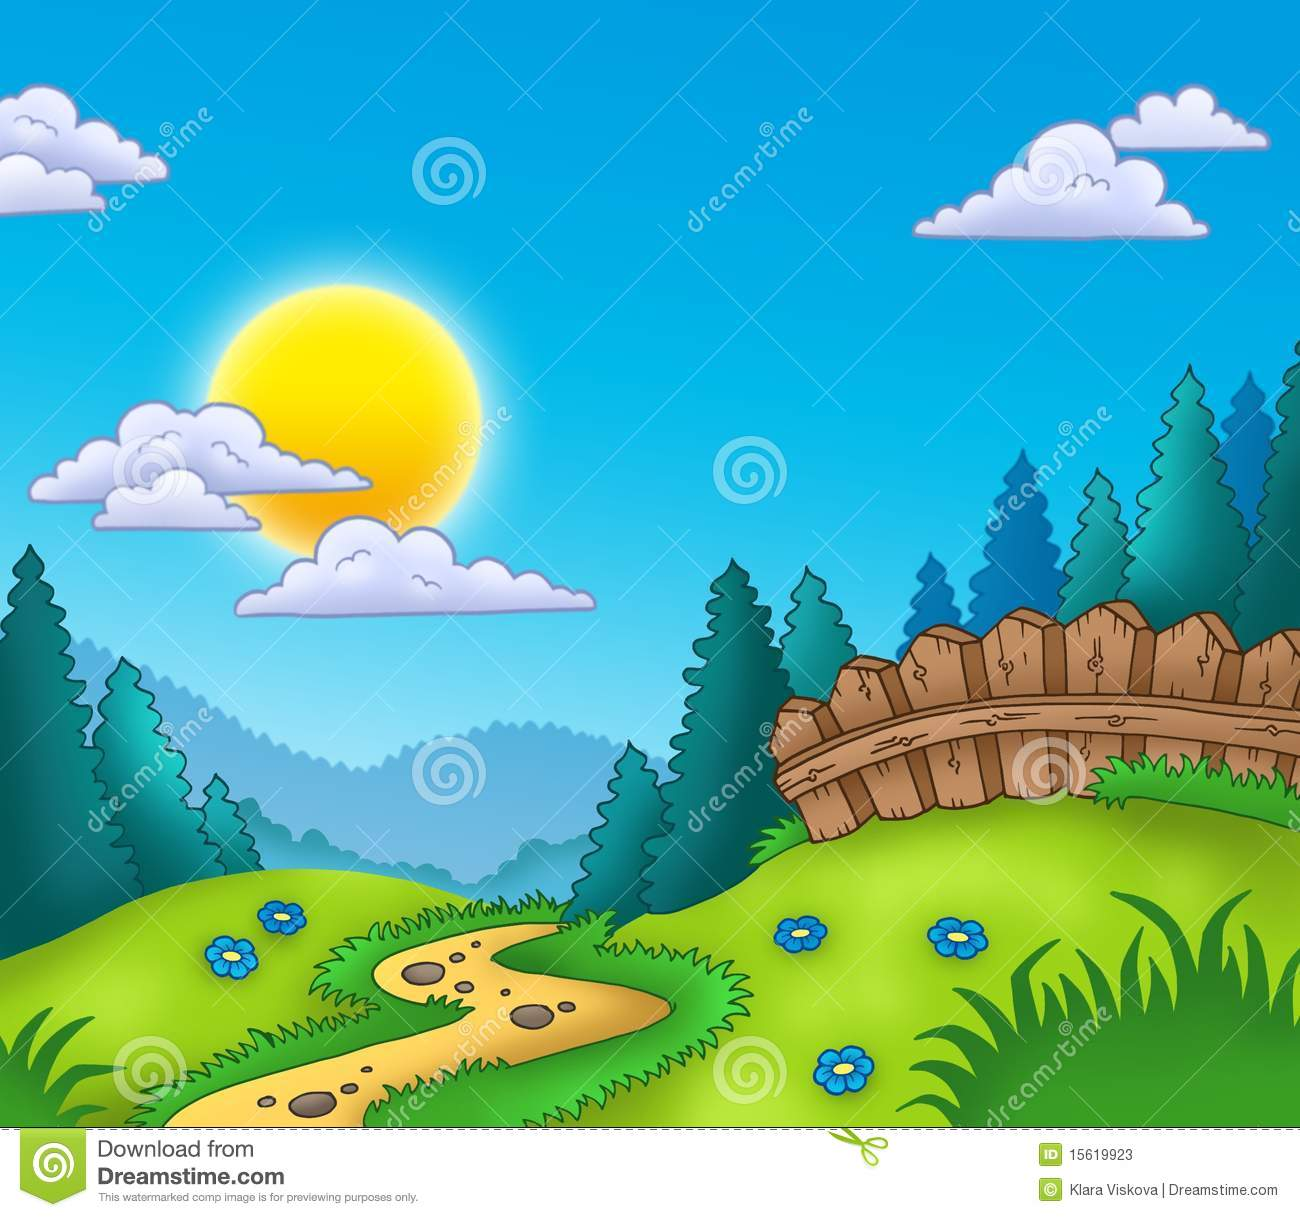 Landscape clipart #11, Download drawings